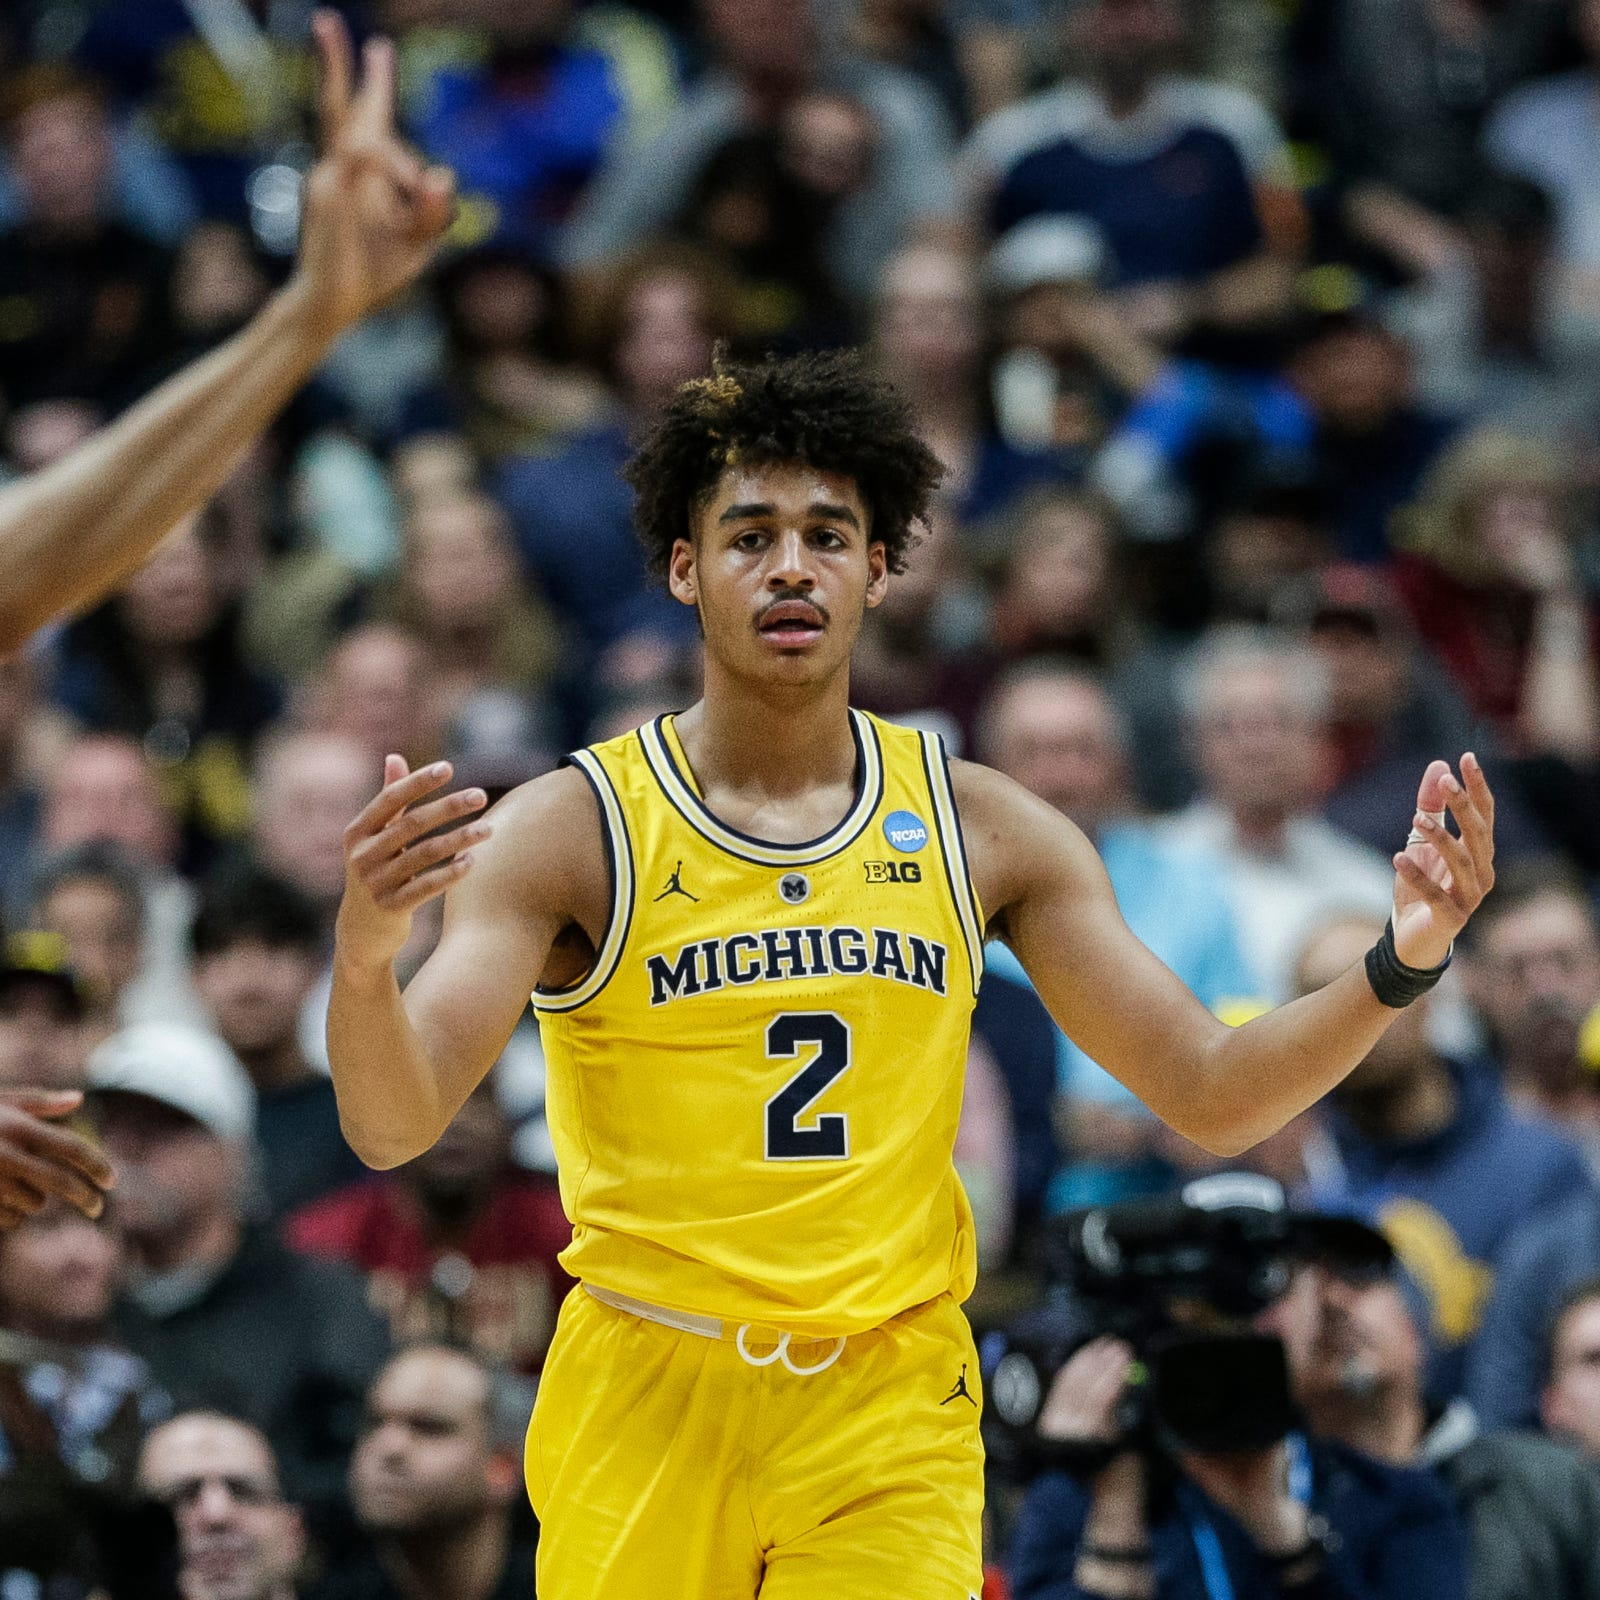 Michigan's Jordan Poole believes he's a pro, but will weigh options